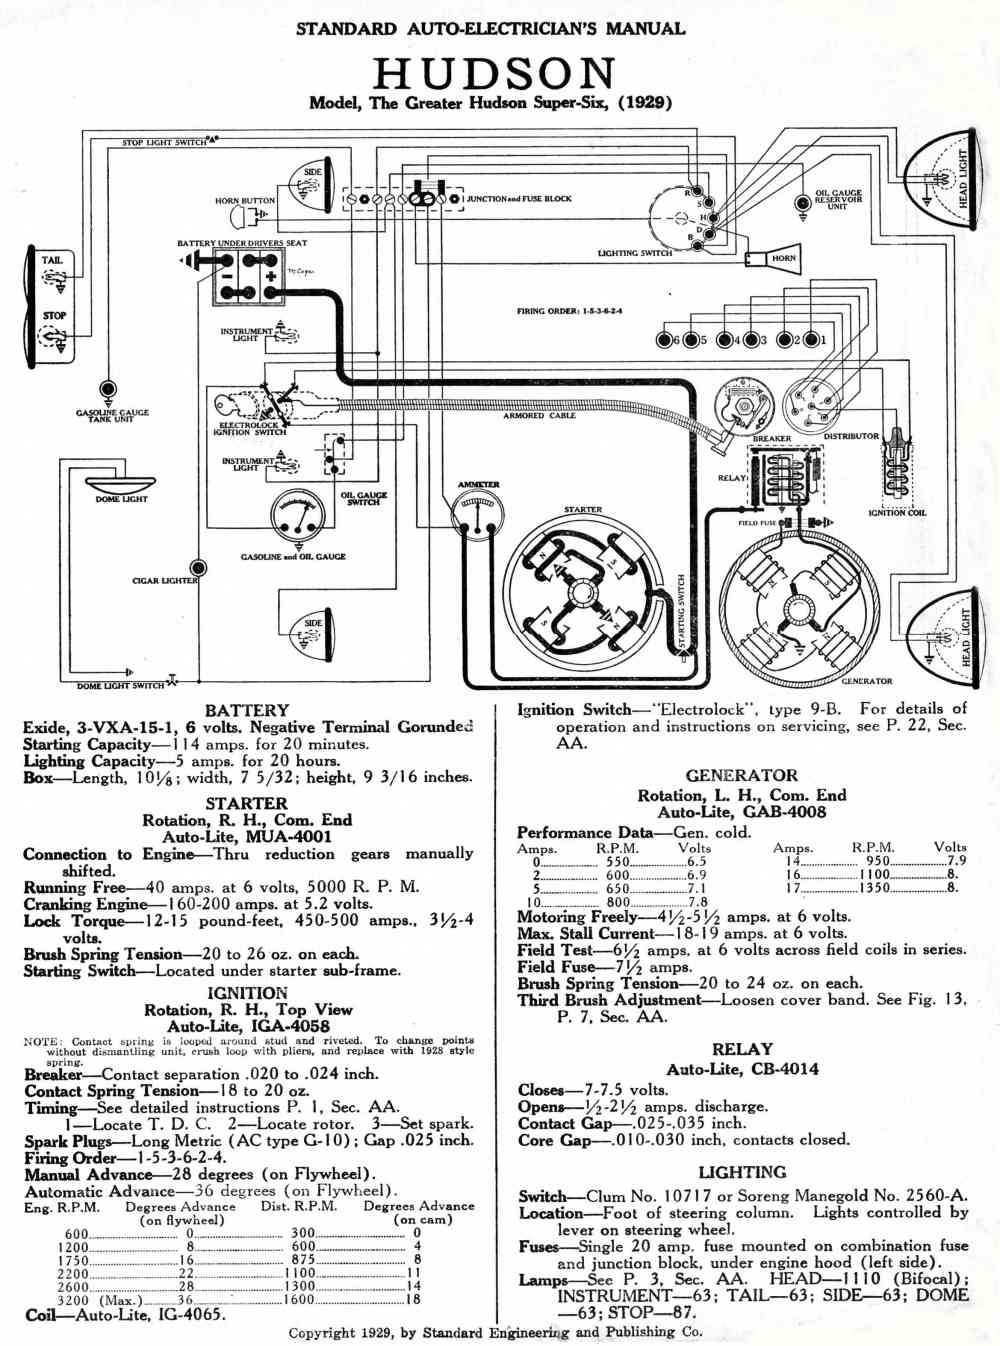 medium resolution of 1954 chrysler wiring diagram wiring diagram1954 chrysler new yorker wiring diagram wiring library1954 chrysler wiring diagram